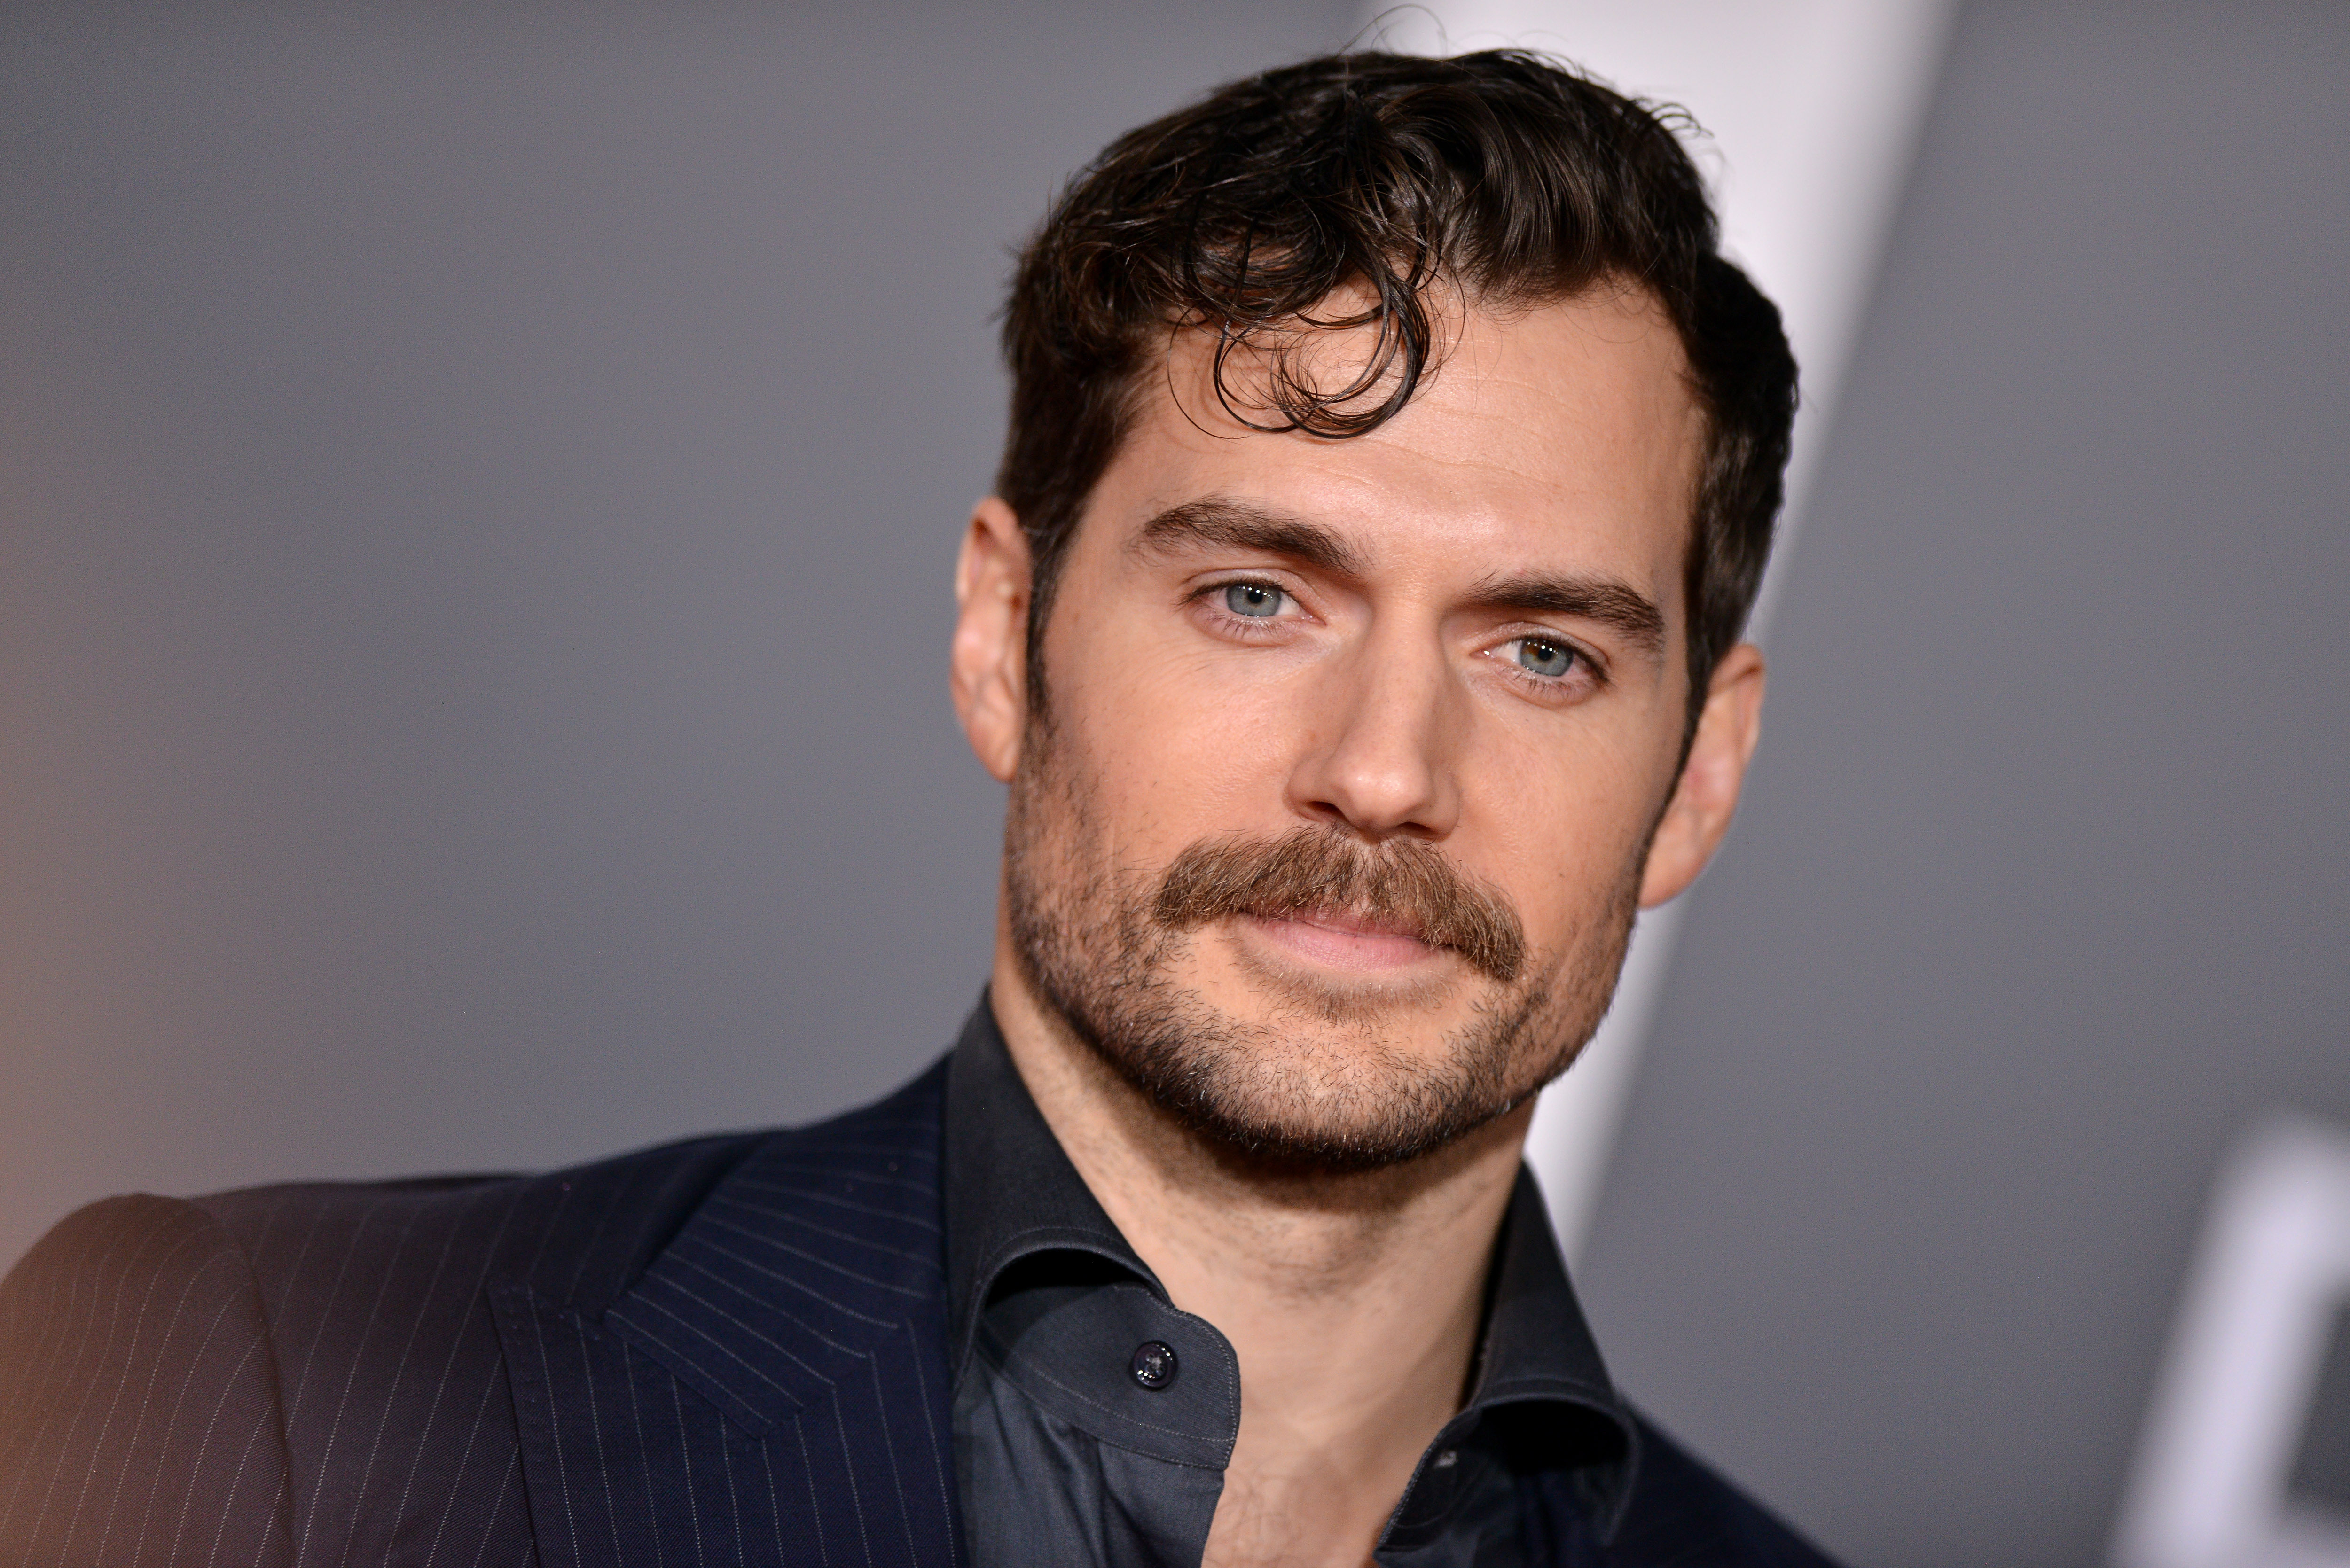 Weird Facial Hair Styles: People Have Noticed Something Strange About Henry Cavill's